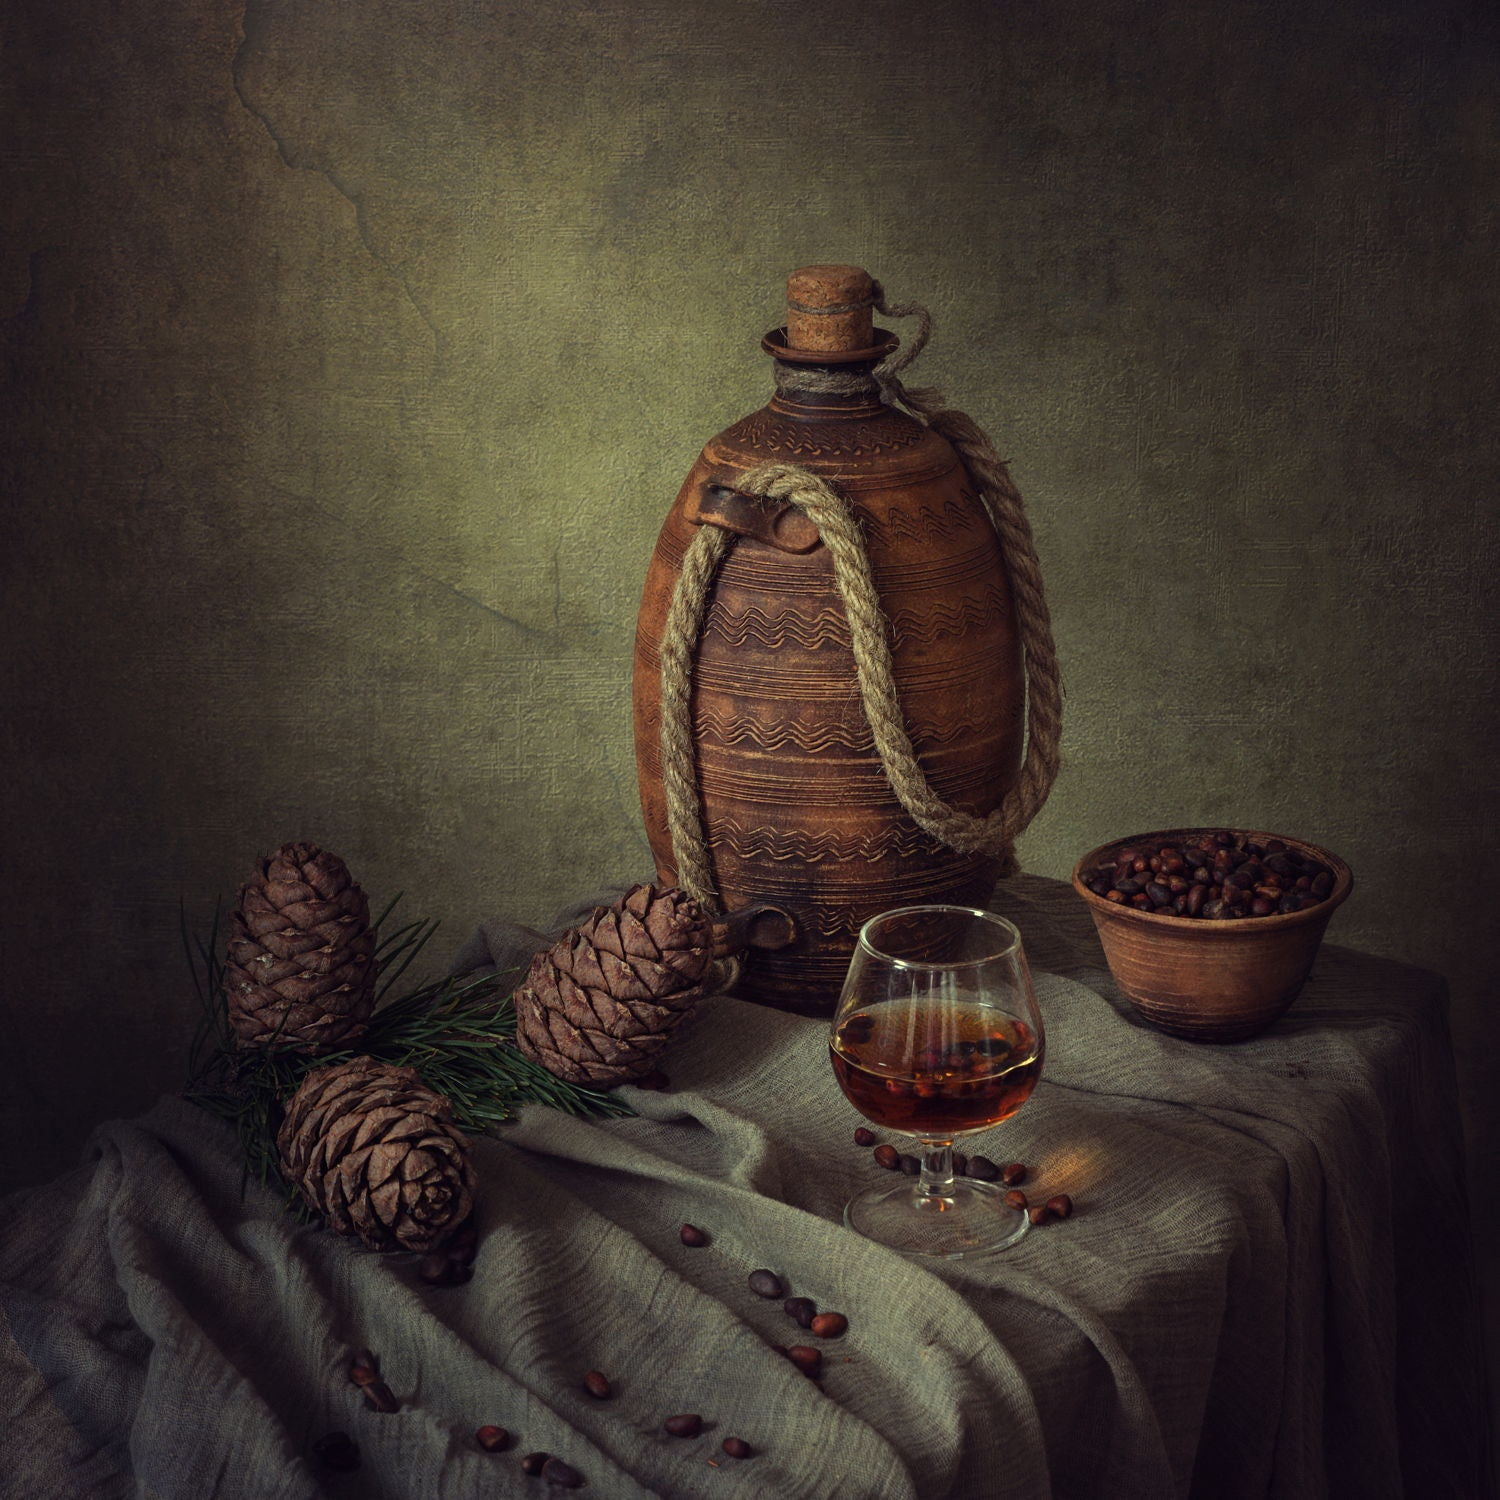 Still Life | Buy Posters, Frames, Canvas, Digital Art & Large Size Prints